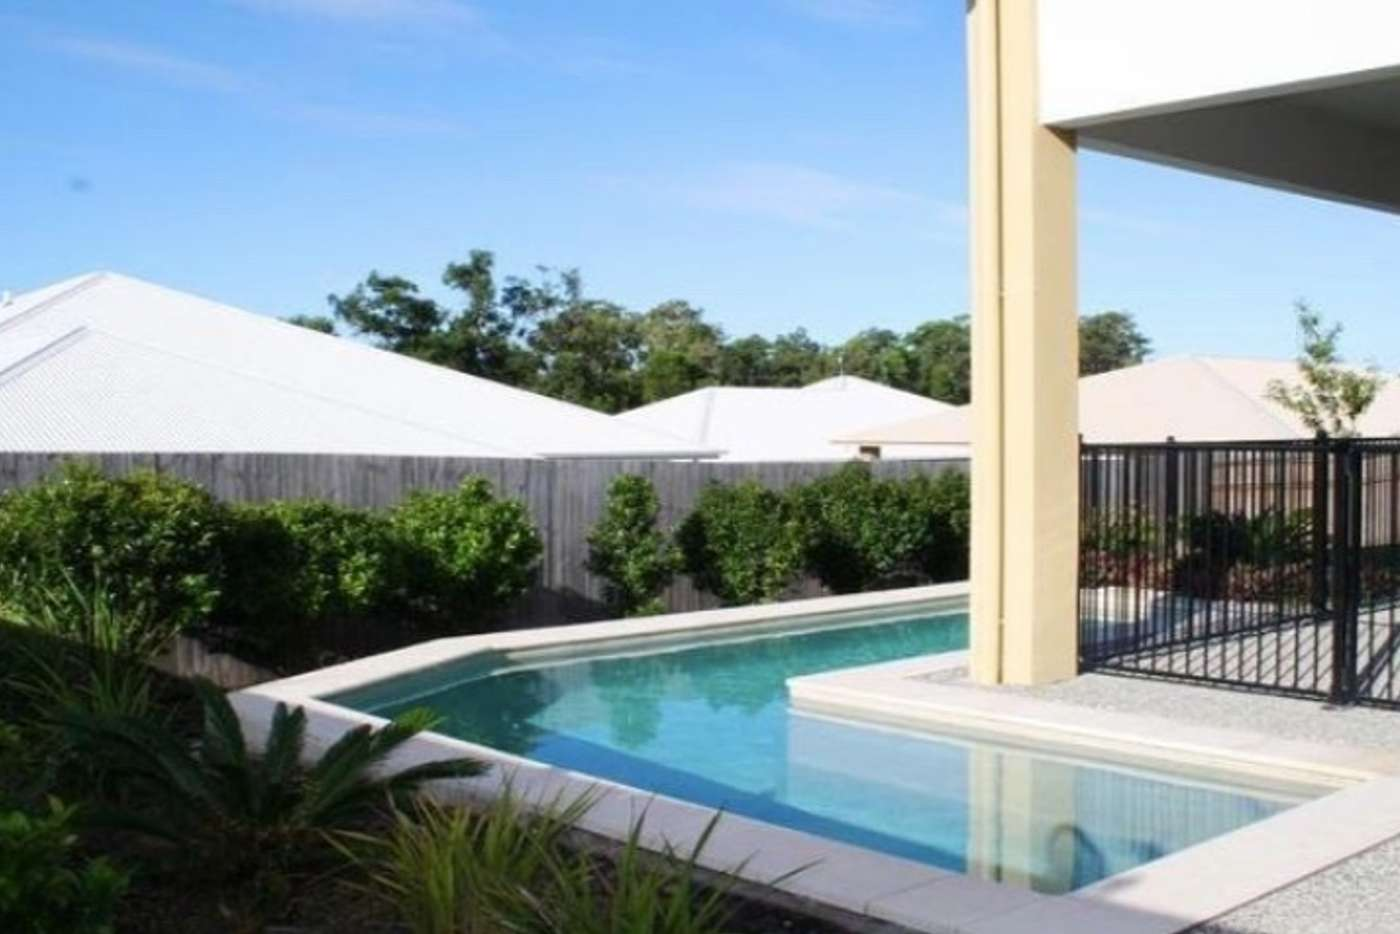 Main view of Homely house listing, 131 The Avenue, Peregian Springs QLD 4573